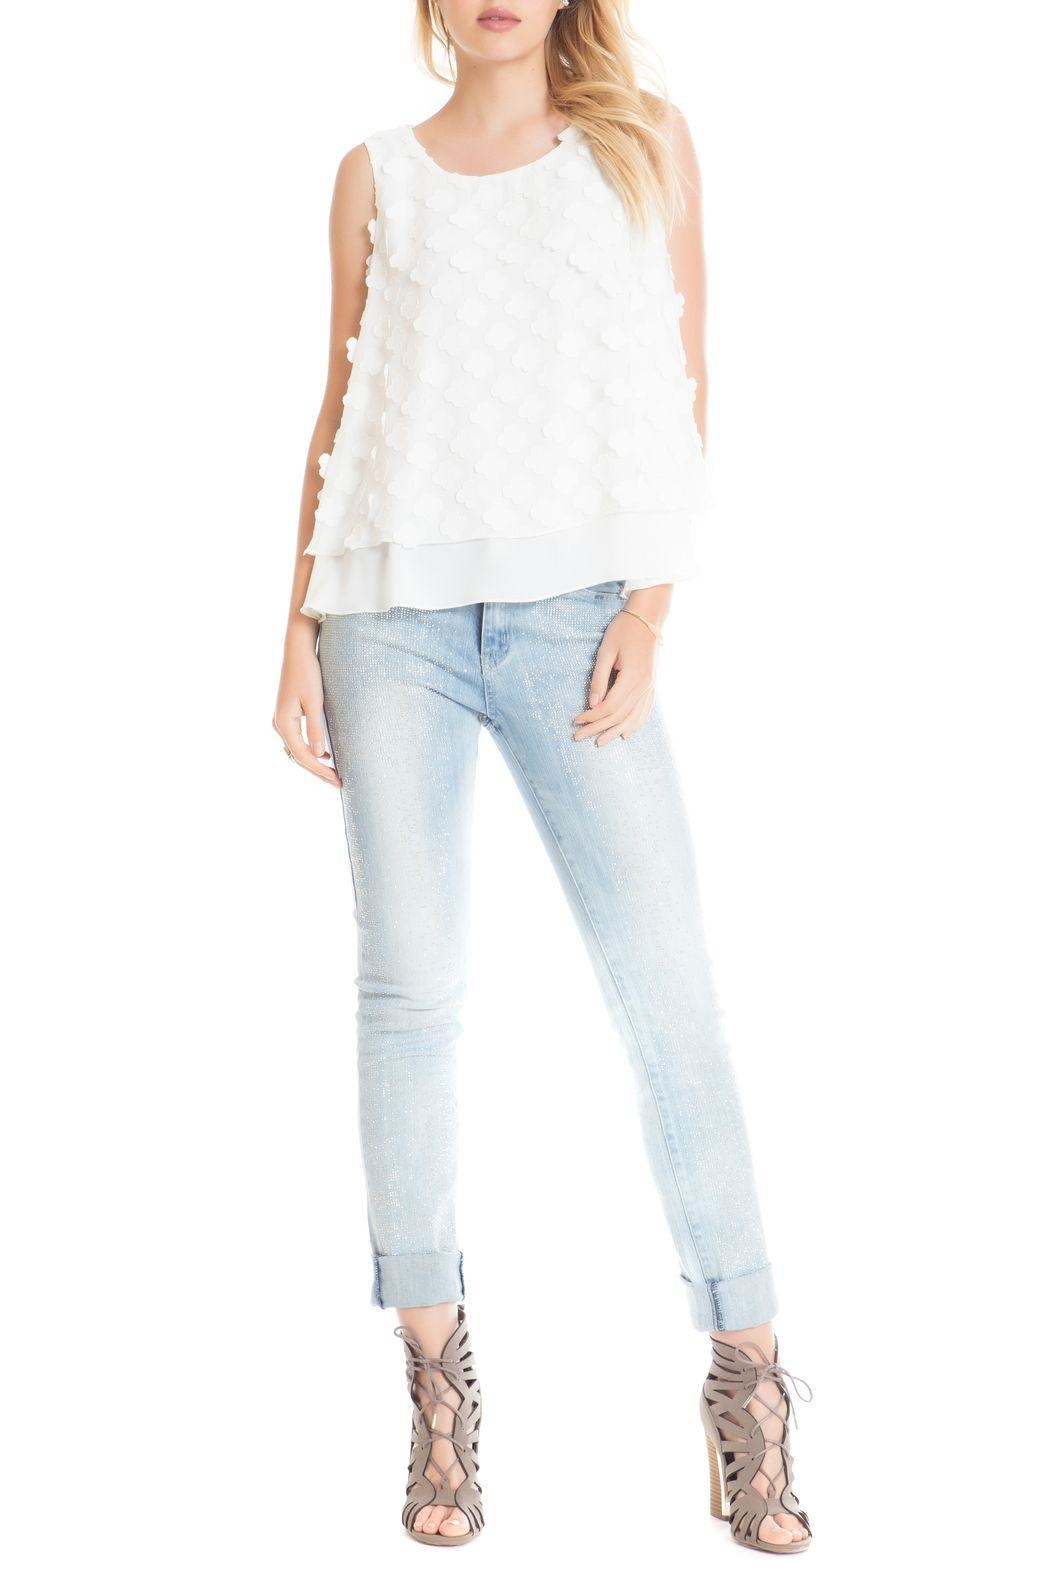 Cartise White Petal Top - Front Cropped Image